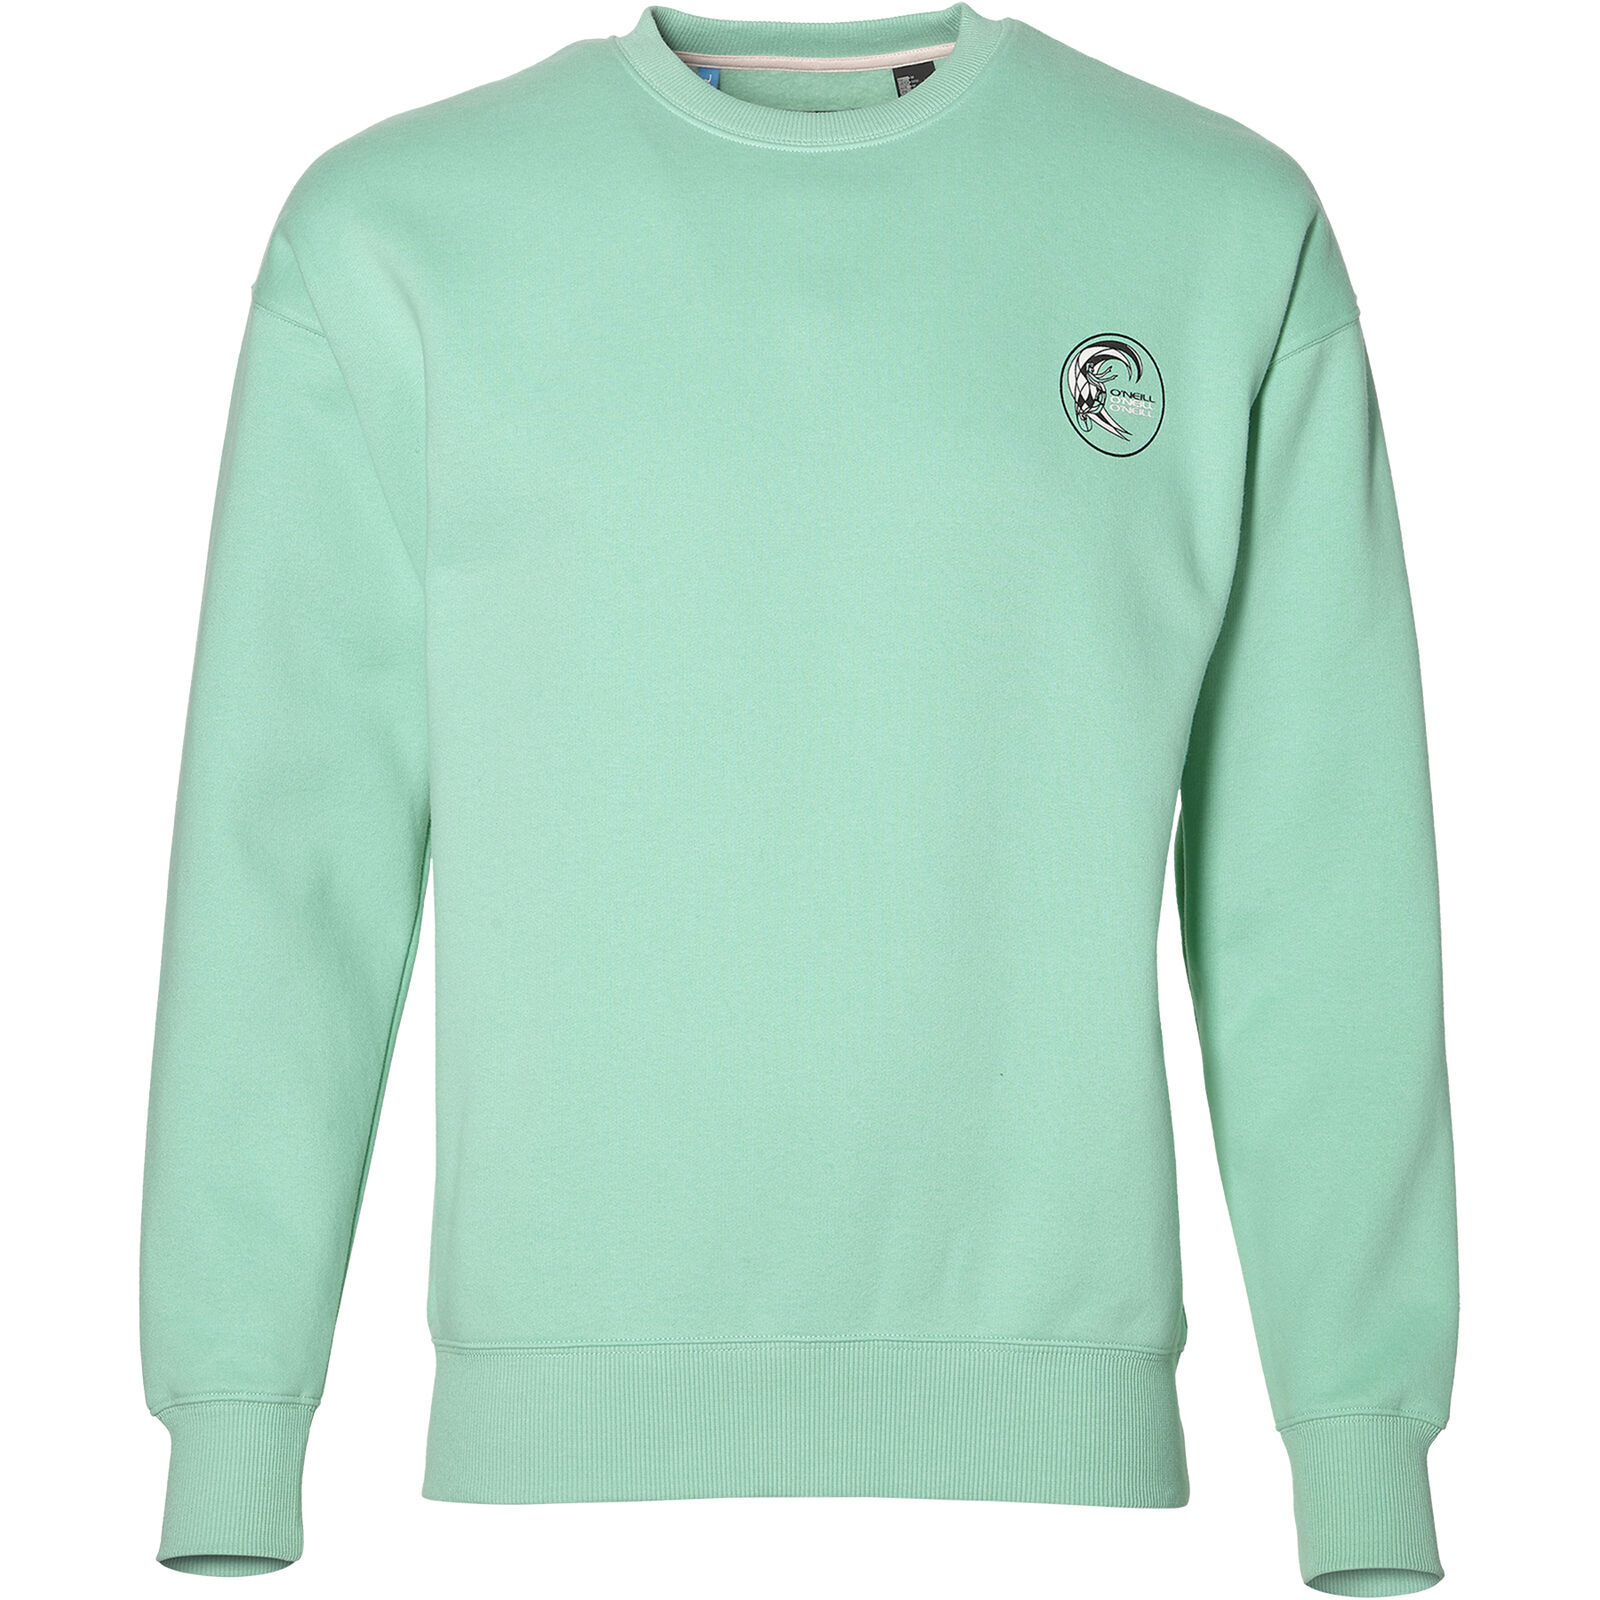 O'Neill Veste Sweat Lm Cercle Surfeur Sweat Turquoise Unicolor